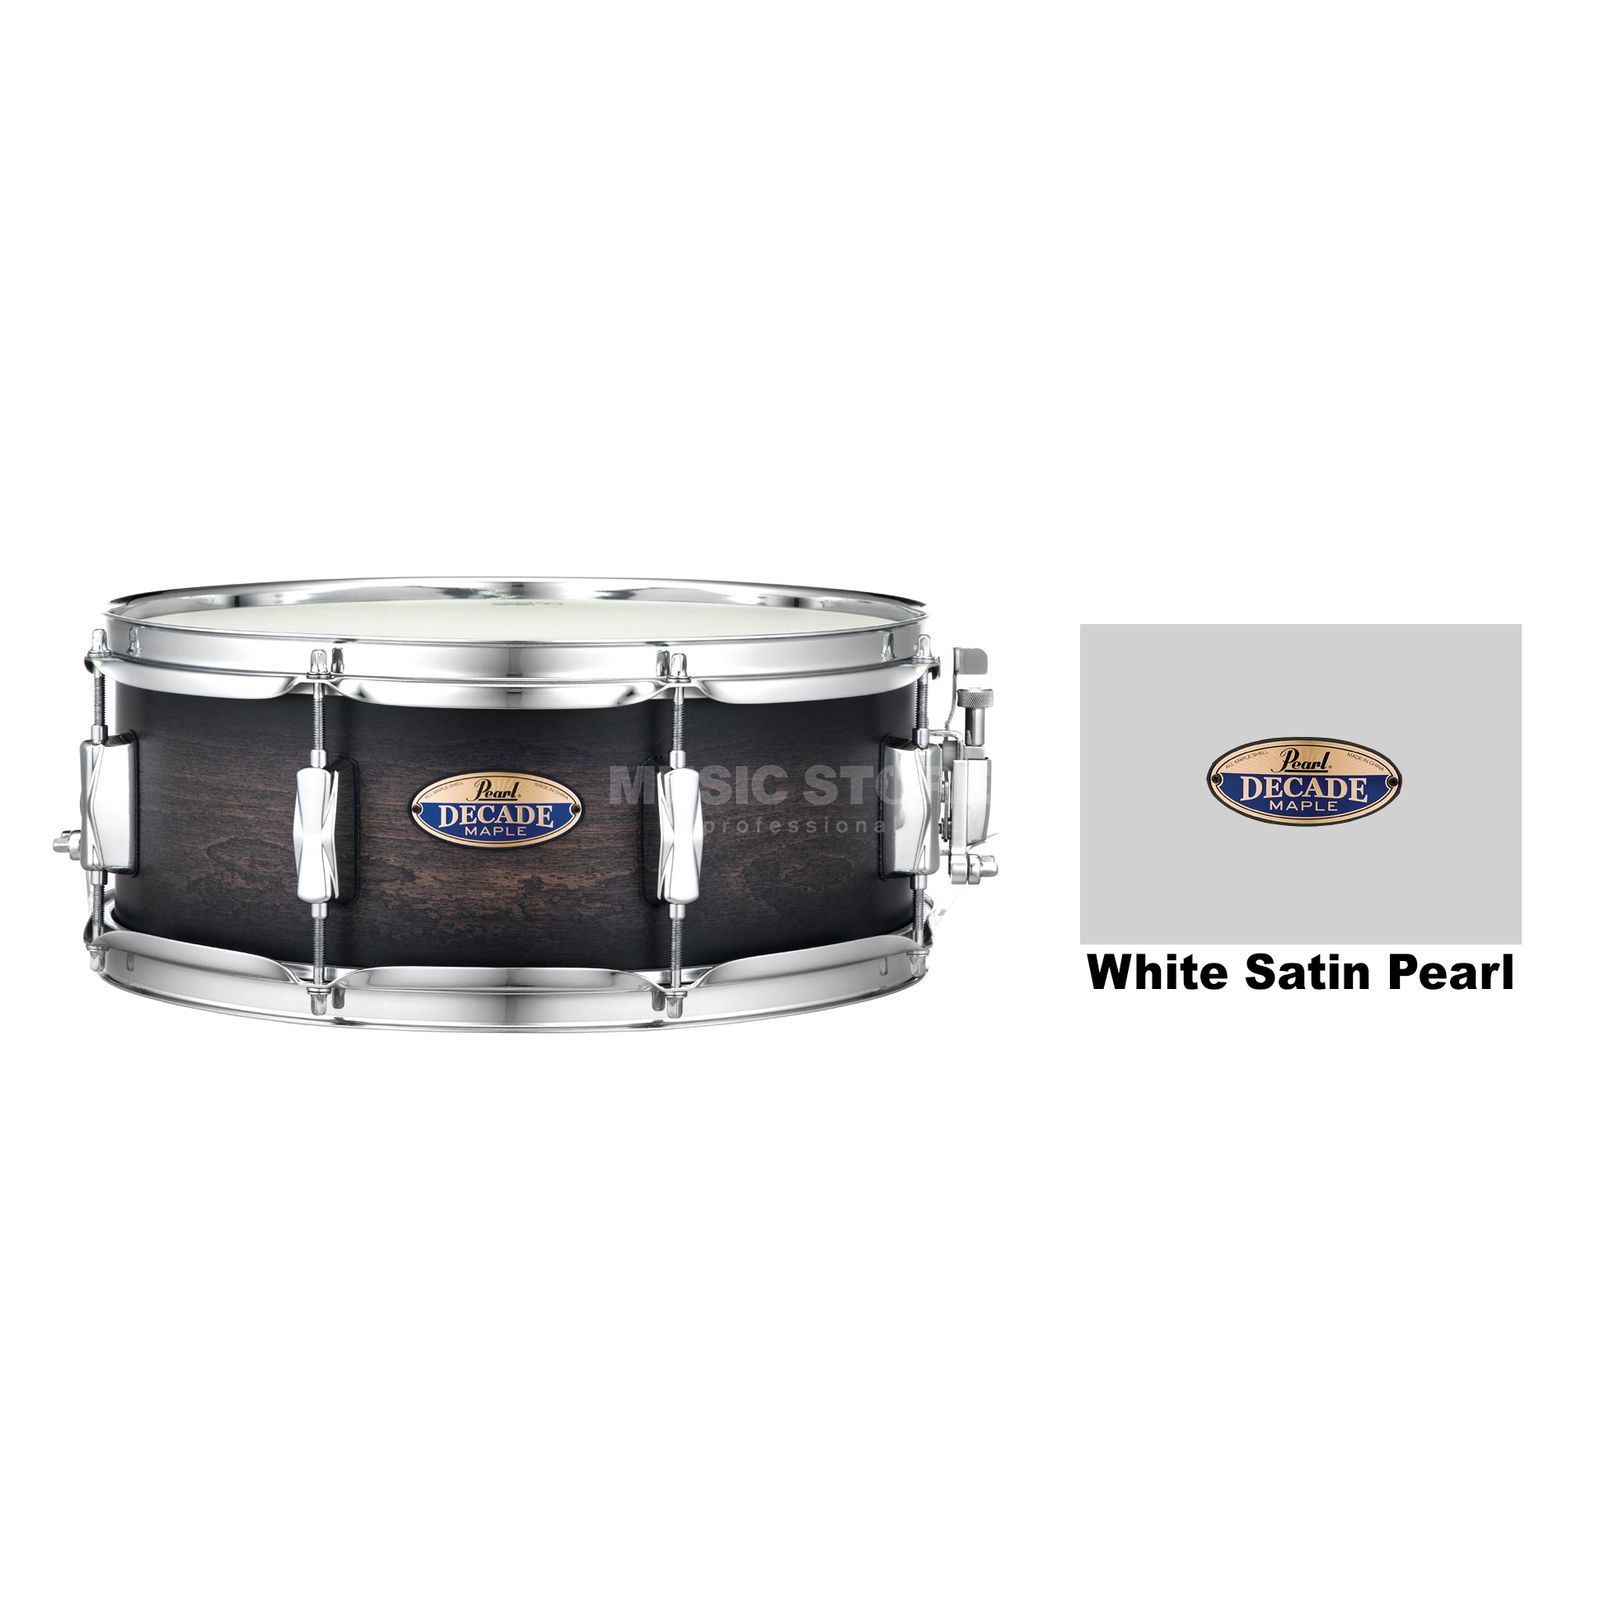 "Pearl Decade Maple Snare 14""x5,5"", White Satin Pearl, Overstock Product Image"